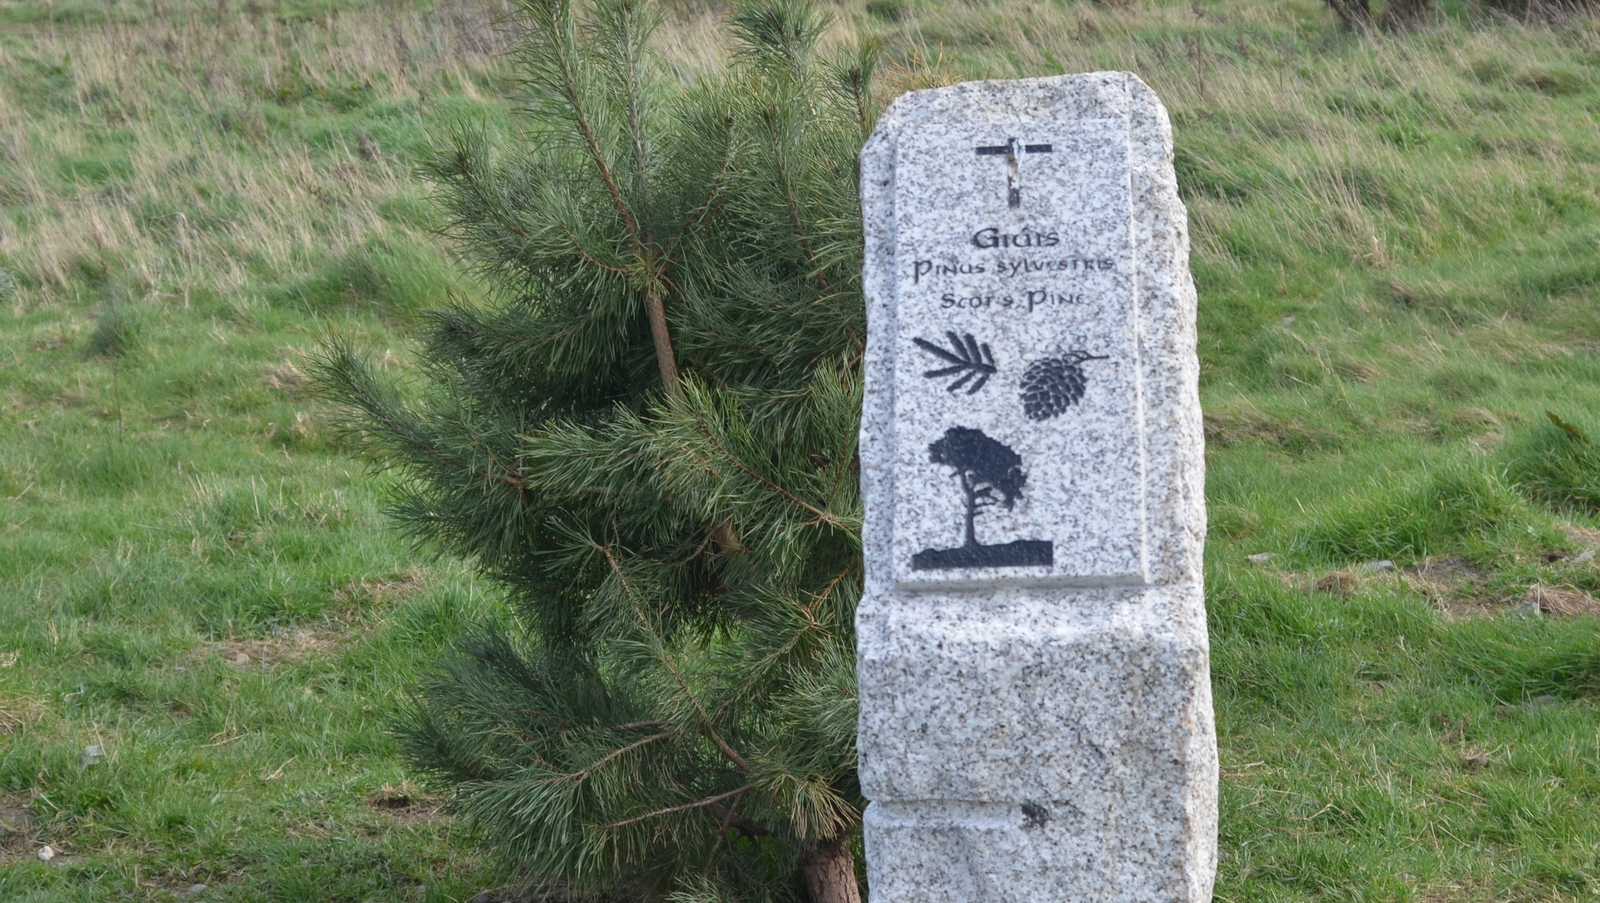 Image - One of the Ogham stone markers on the Dodder Valley Tree Trail